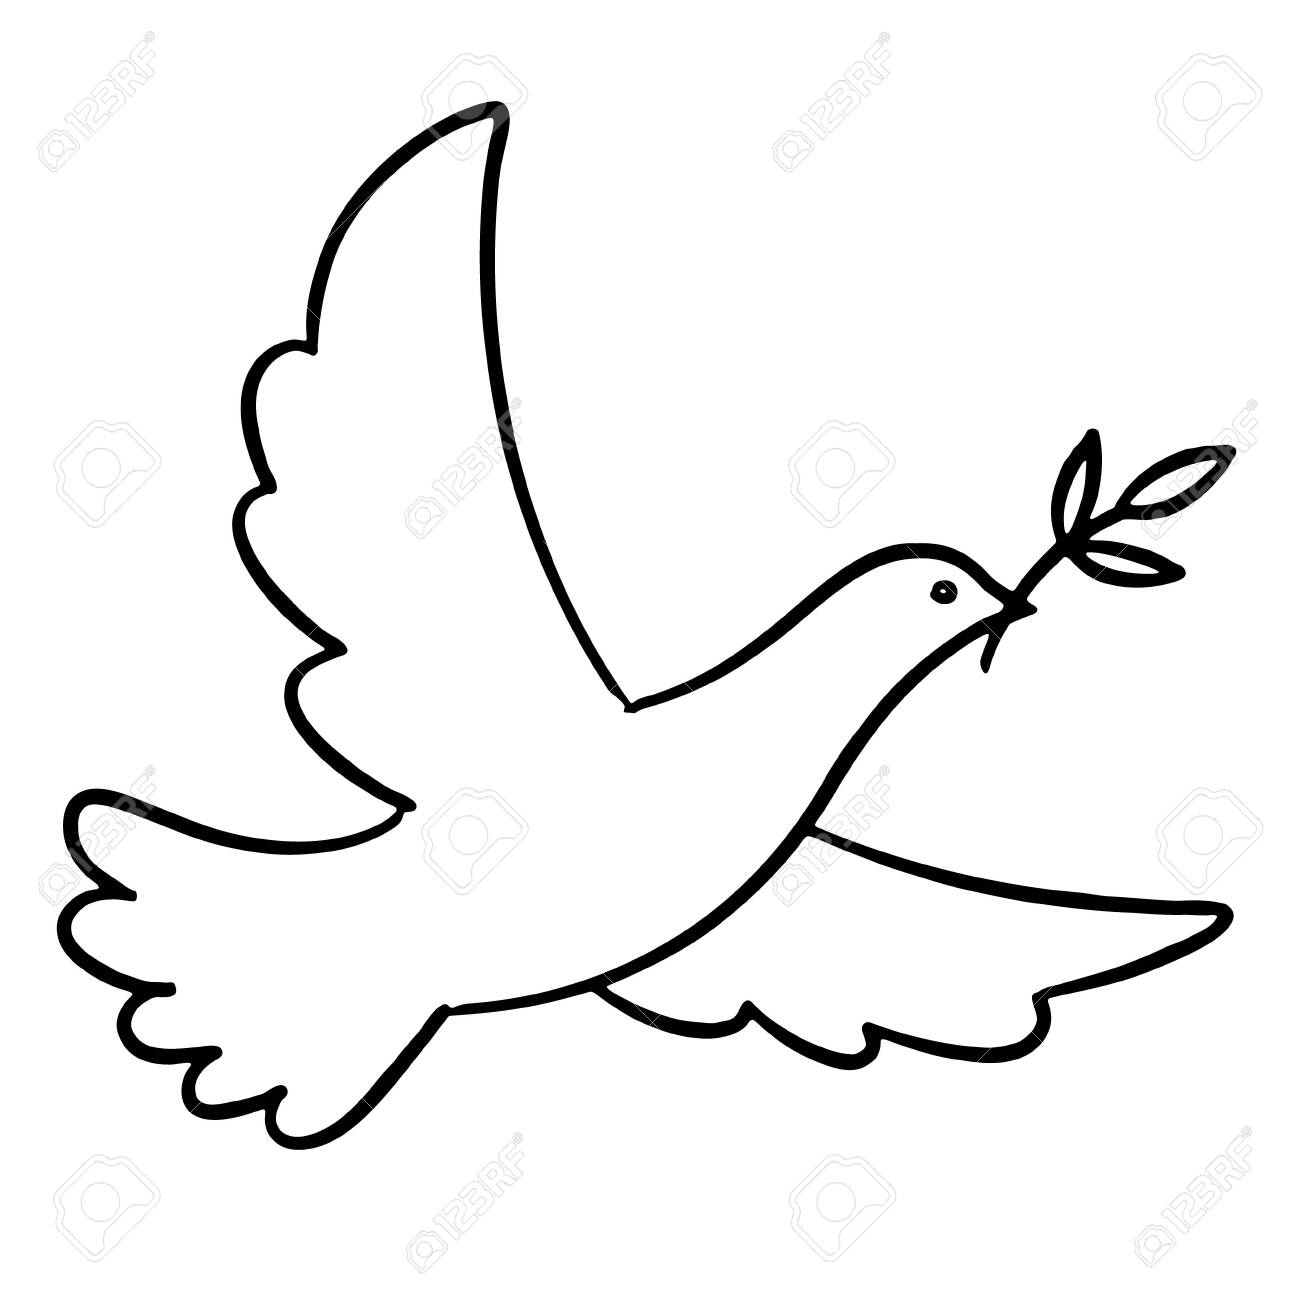 Dove with an olive branch - 153722828